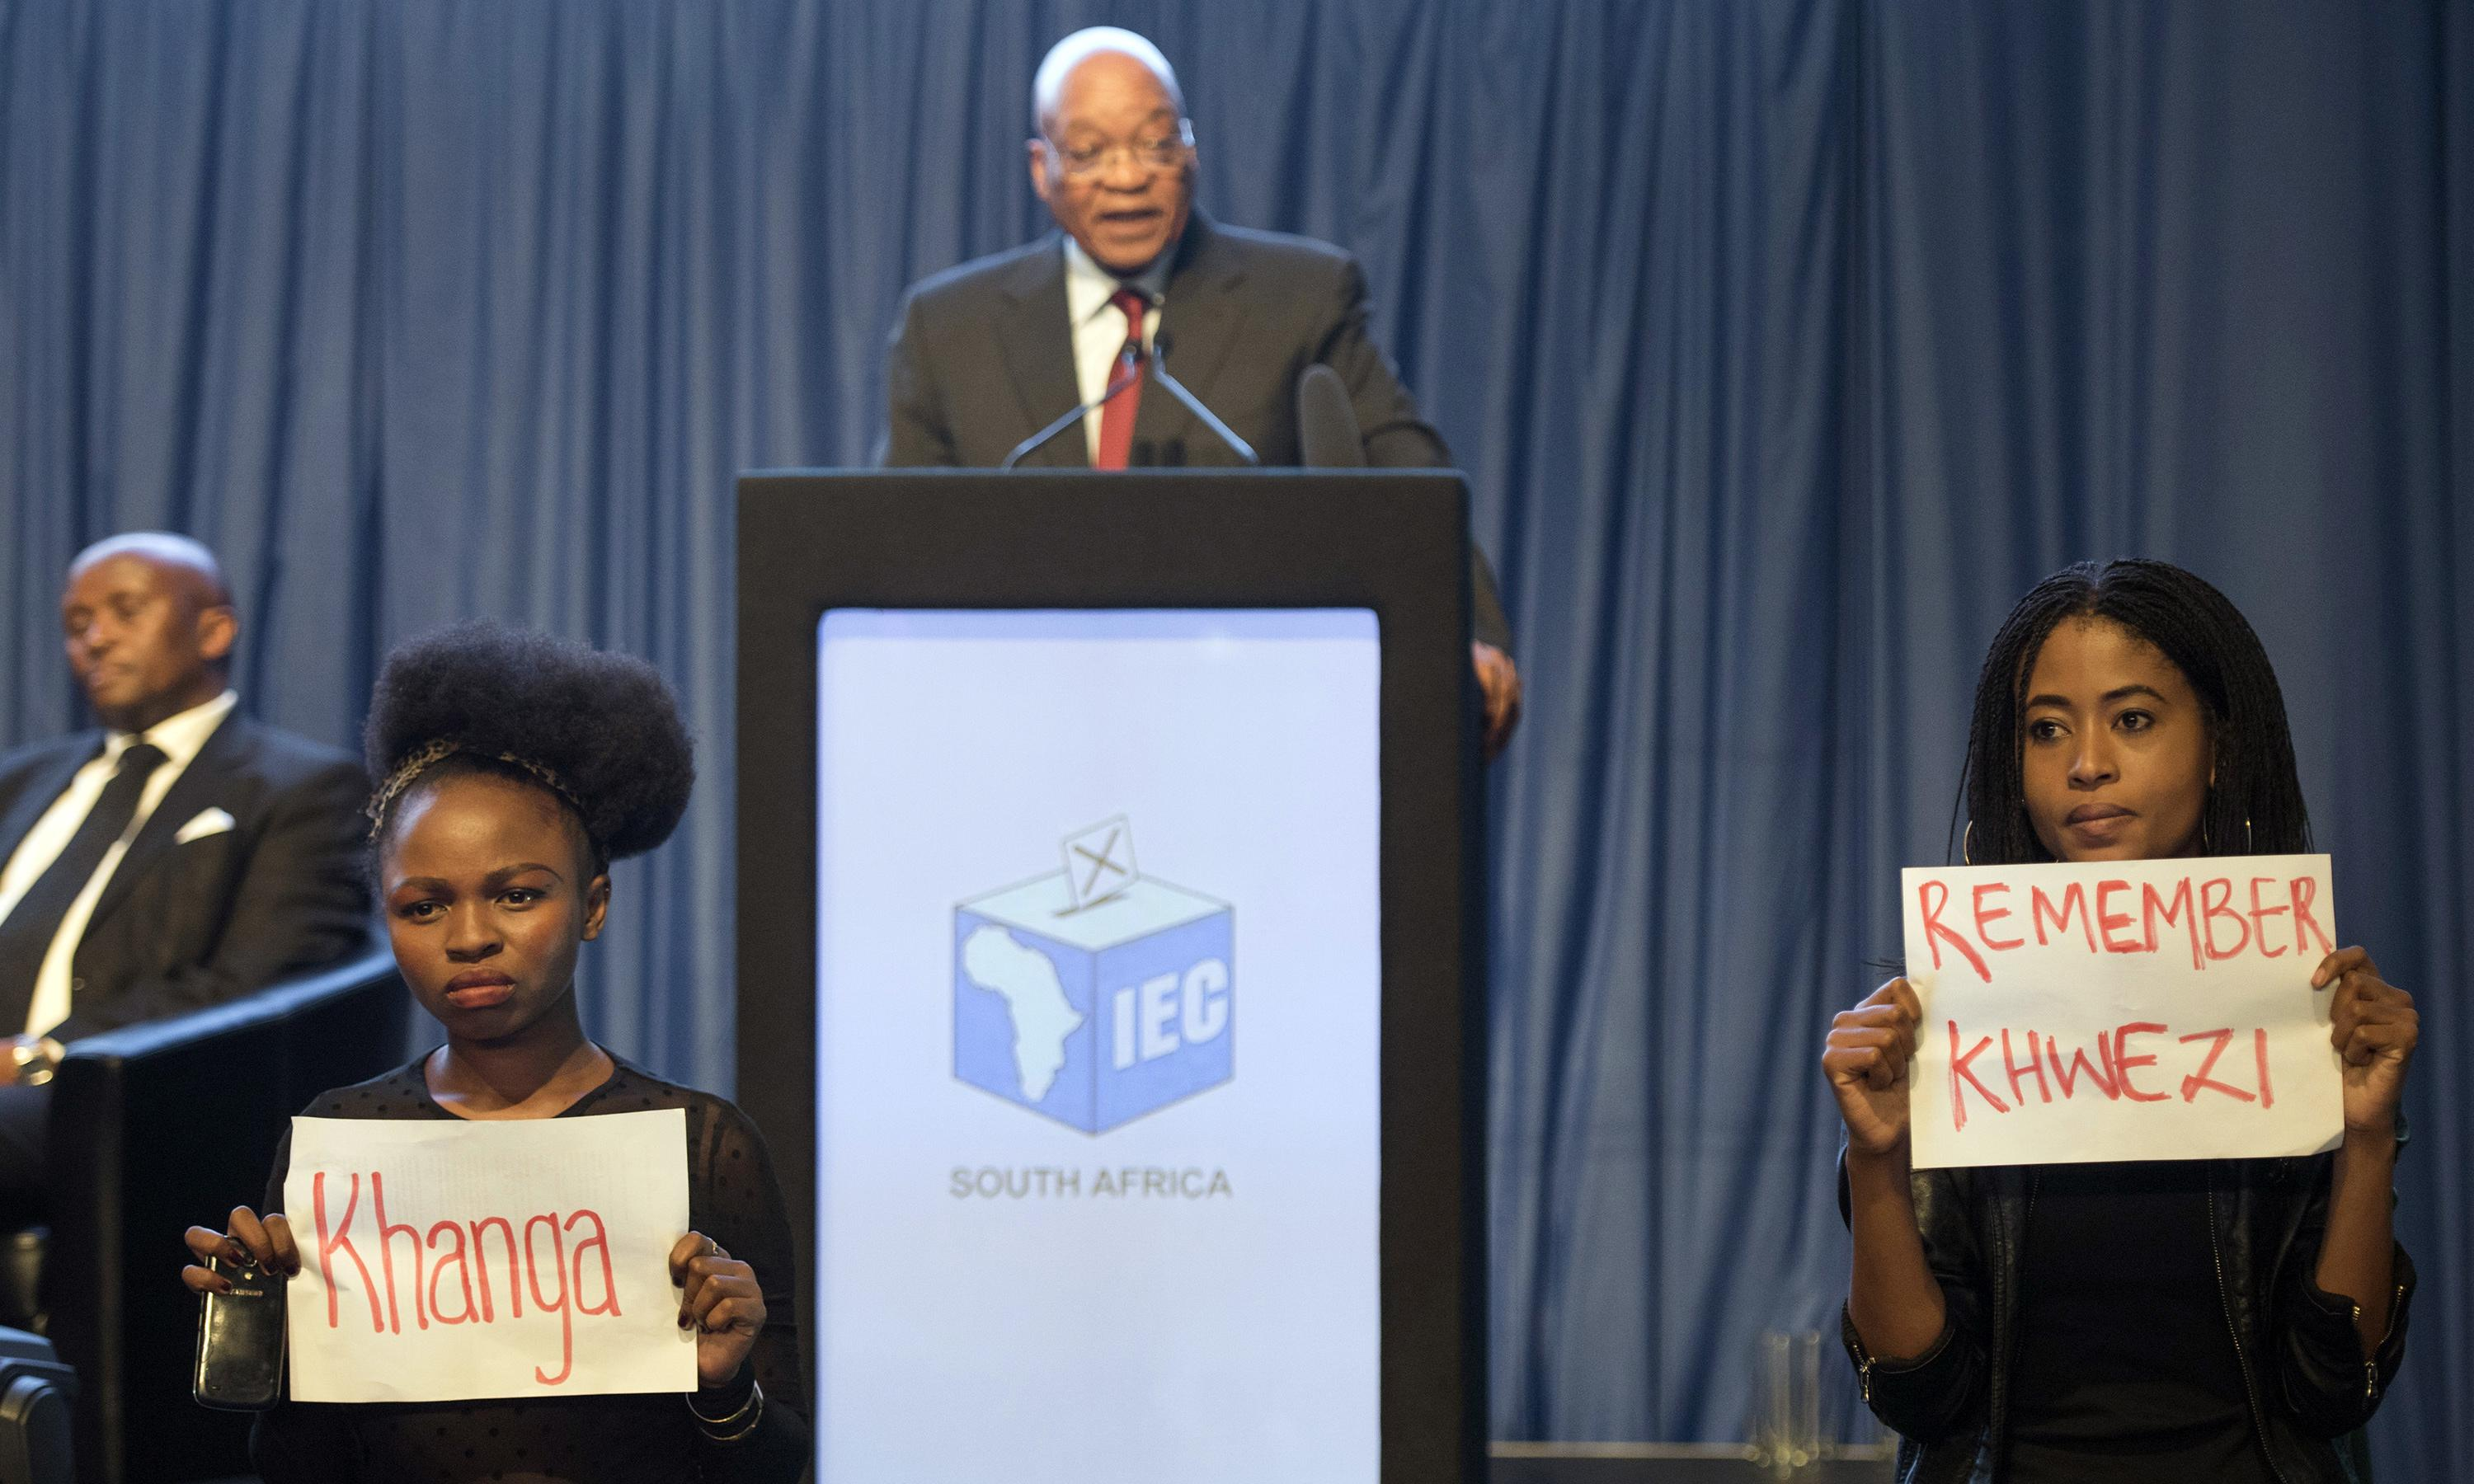 How South African anti-rape protesters disrupted Zuma's speech